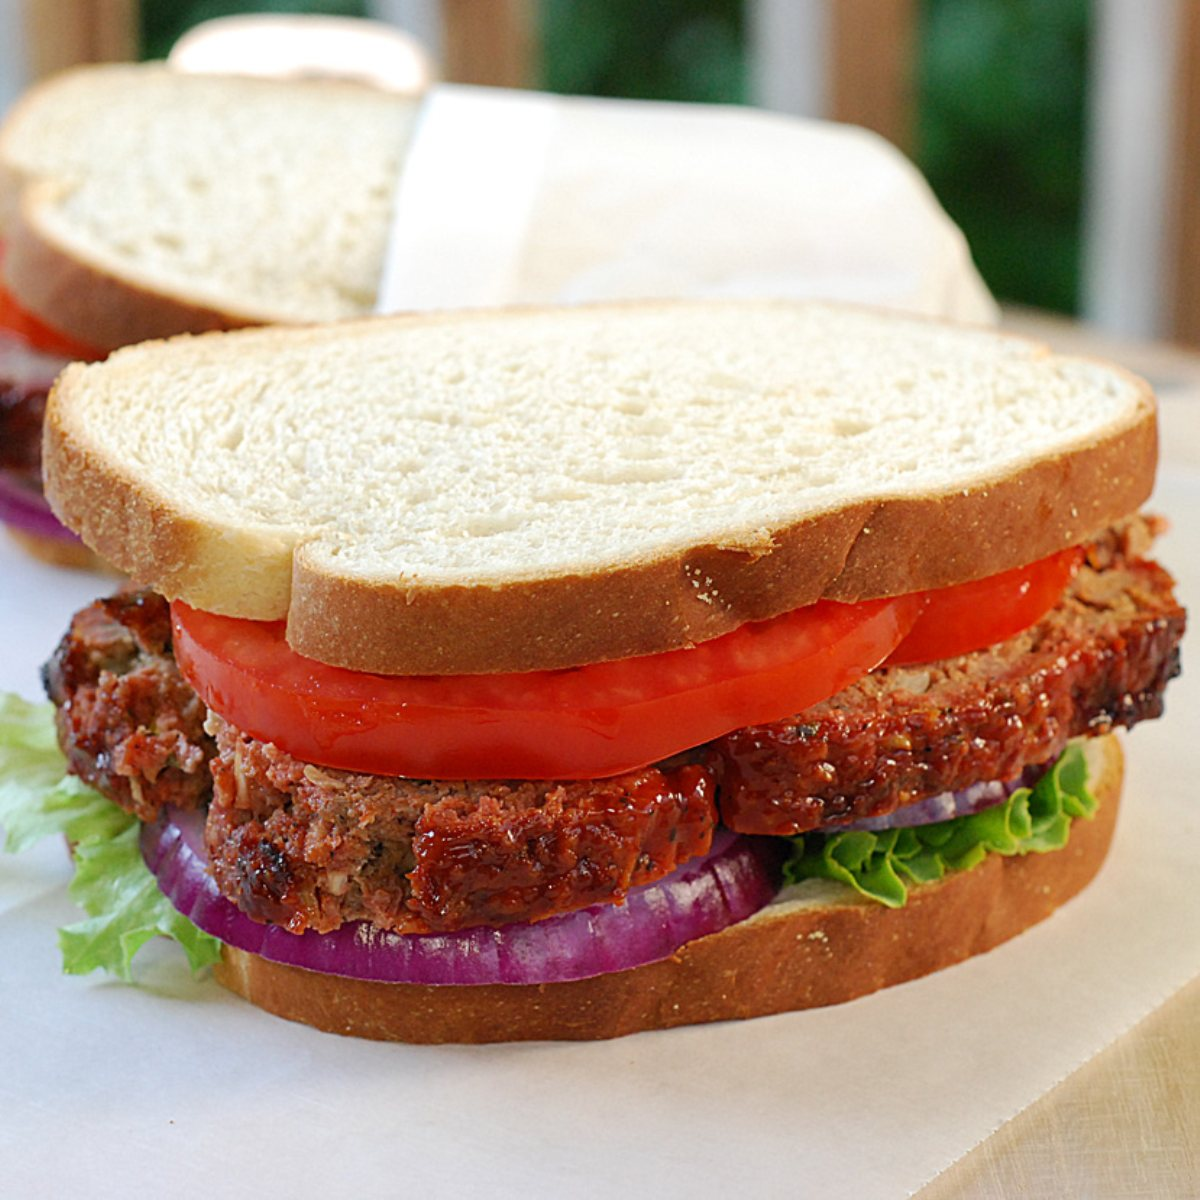 ... Main Dish Sandwiches and Wraps Underground Deli Meatloaf Sandwich